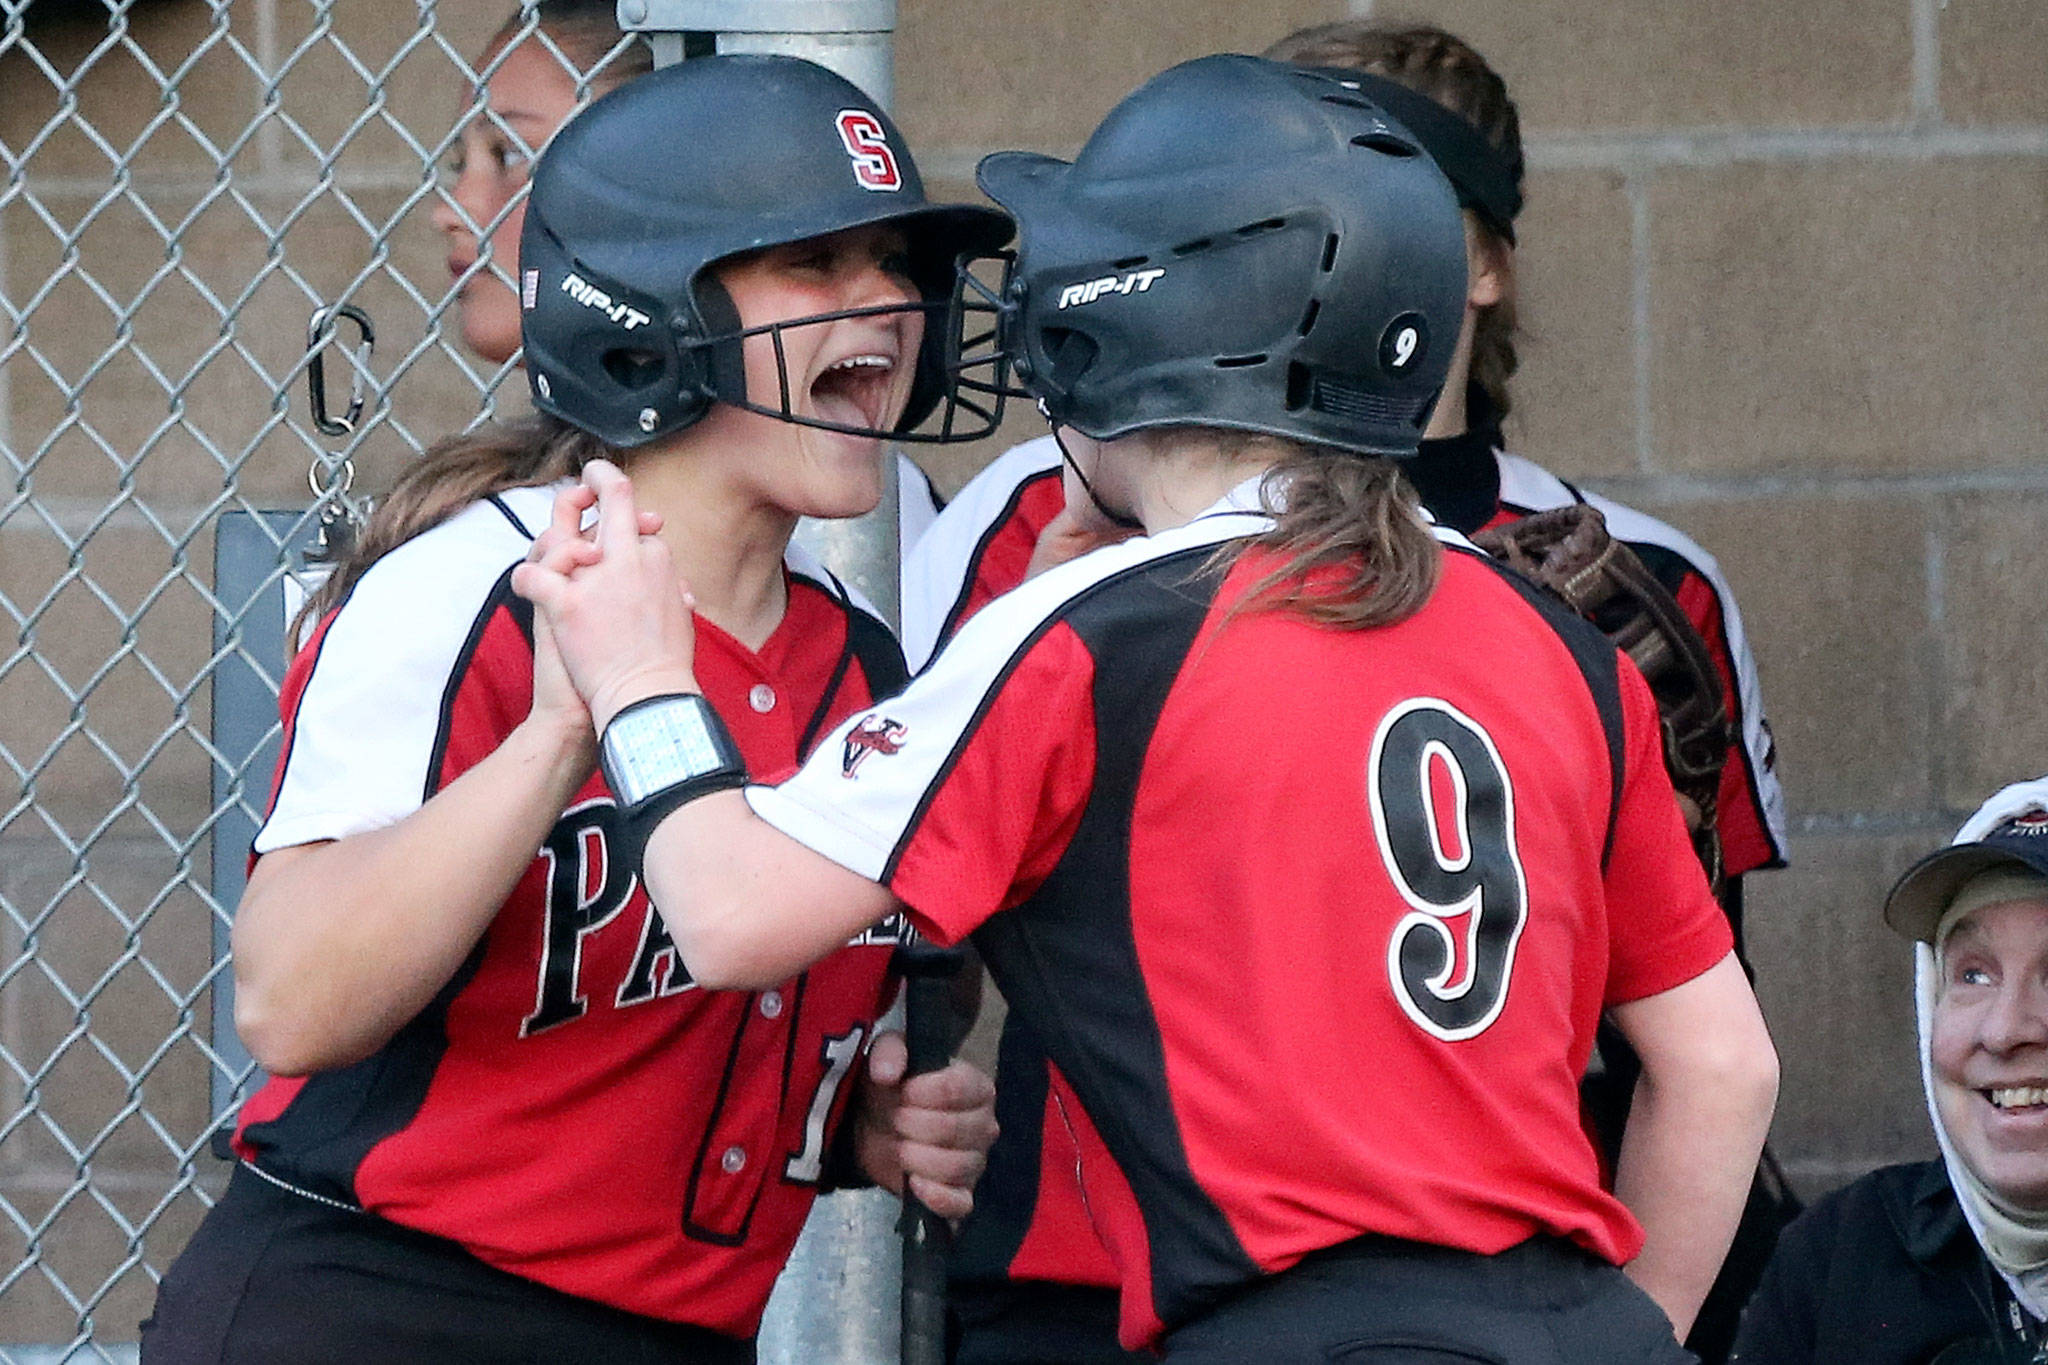 Snohomish's Anna Robinson (left) celebrates with Janell Williams after Williams scores a run Wednesday night at Lincoln Field in Everett on May 1, 2019. (Kevin Clark / The Herald)